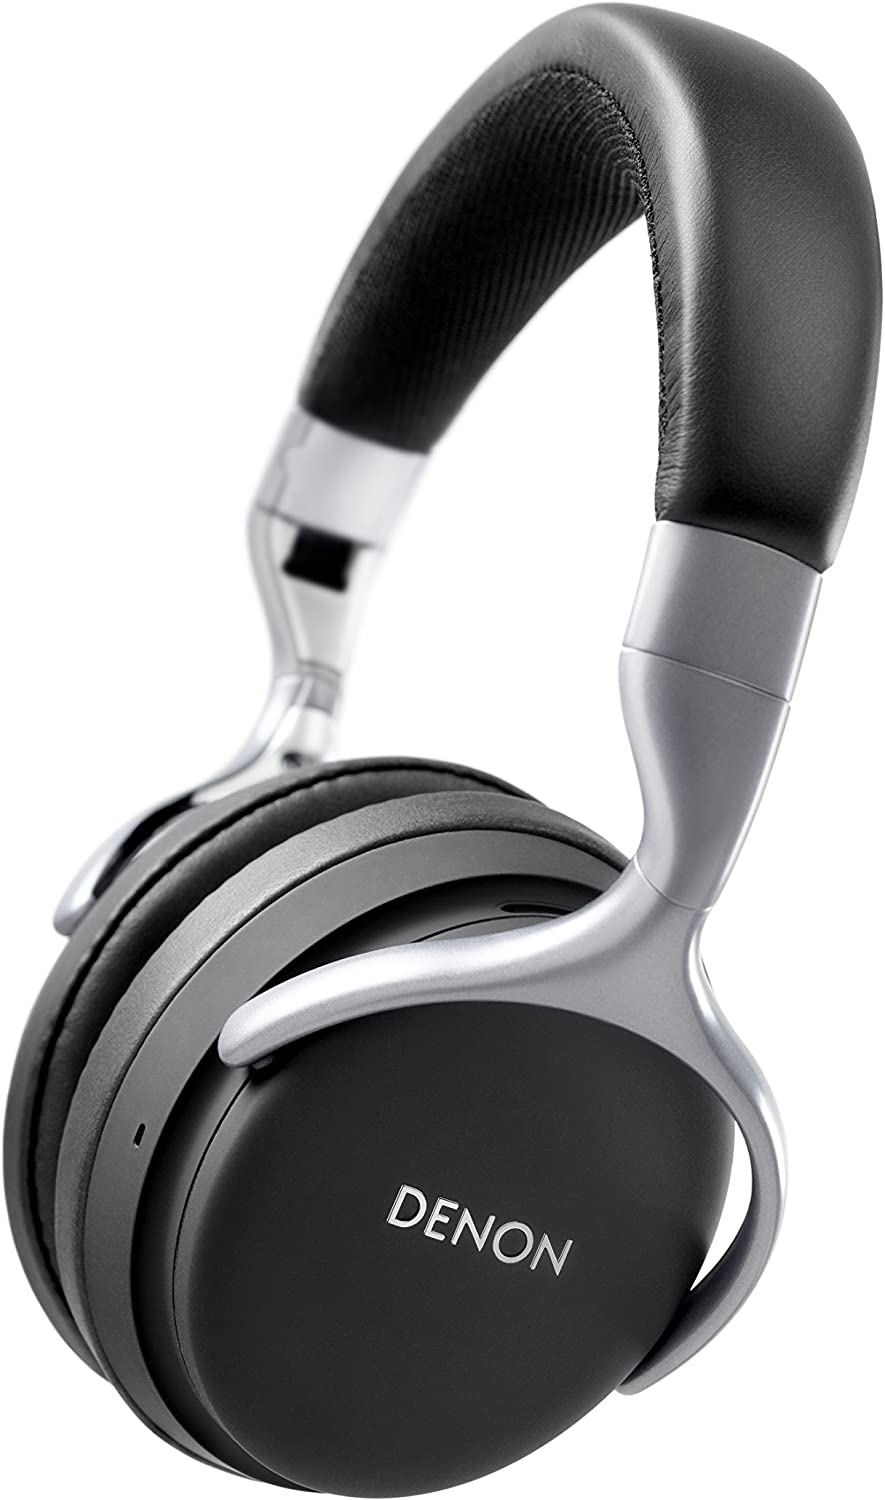 DENON (Denon) high resolution sound source corresponding noise canceling system employs Bluetooth headphone AH-GC20